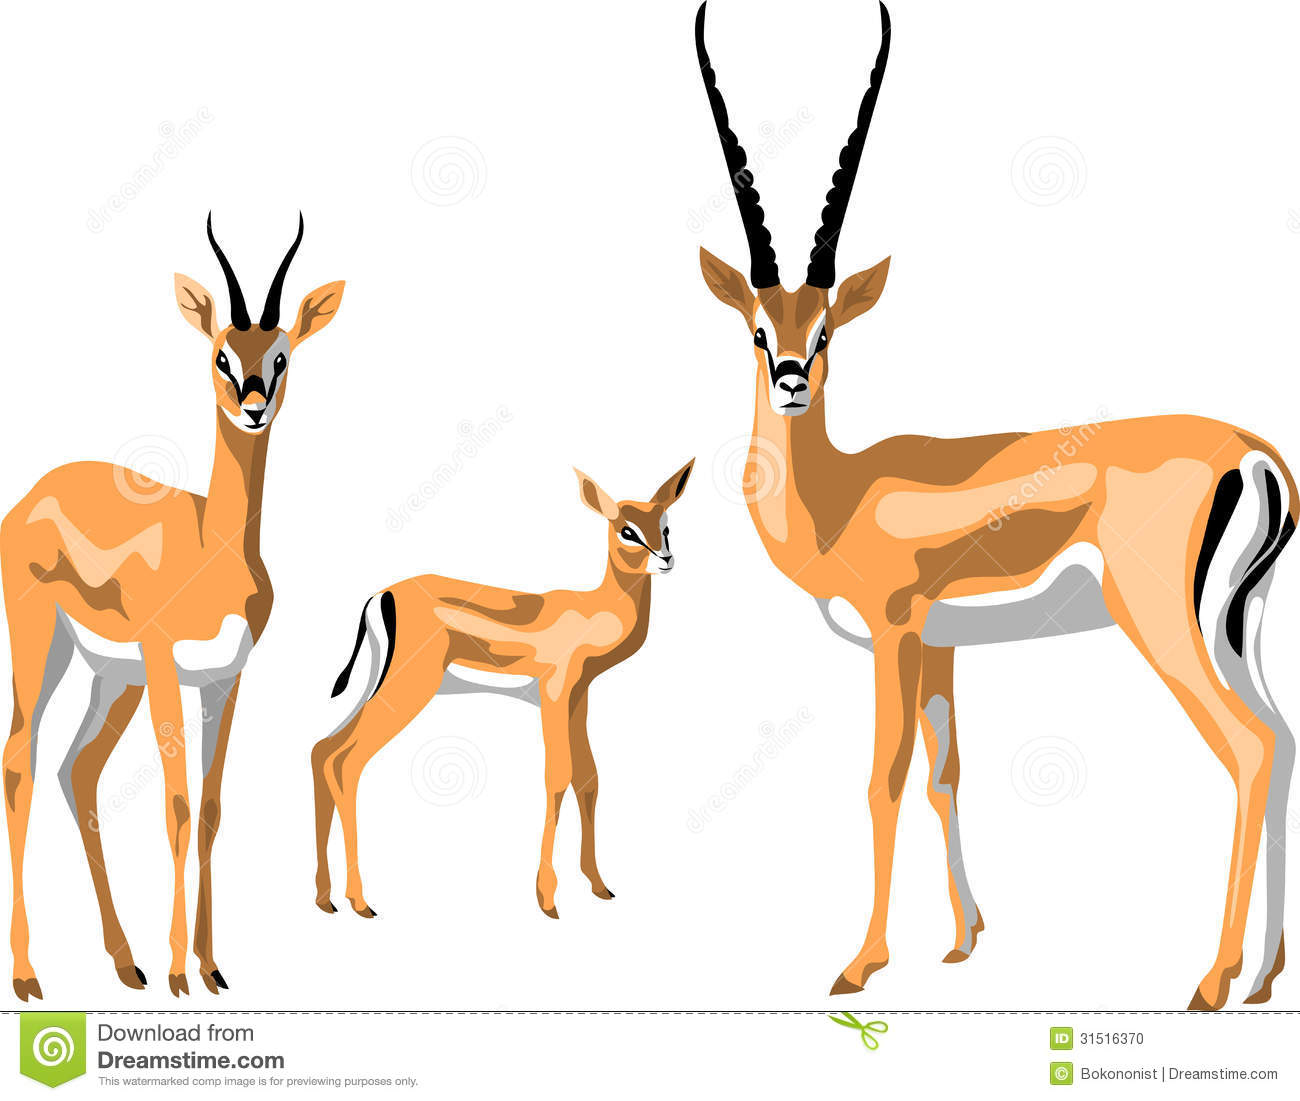 clipart springbok - photo #16